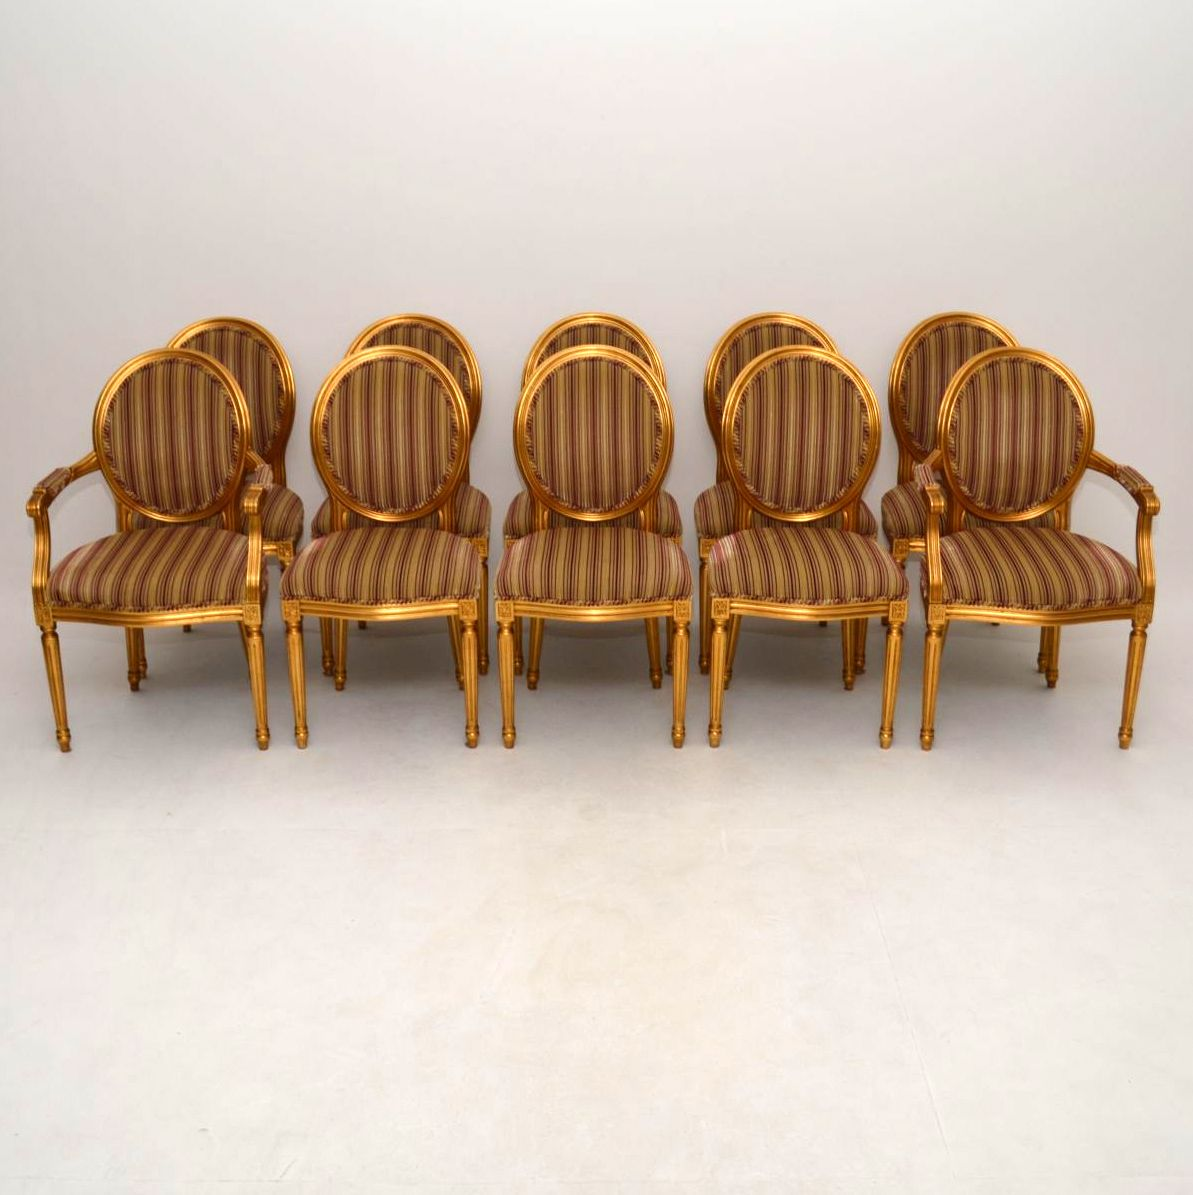 Set of Ten Antique French Style Gilt Wood Dining Chairs